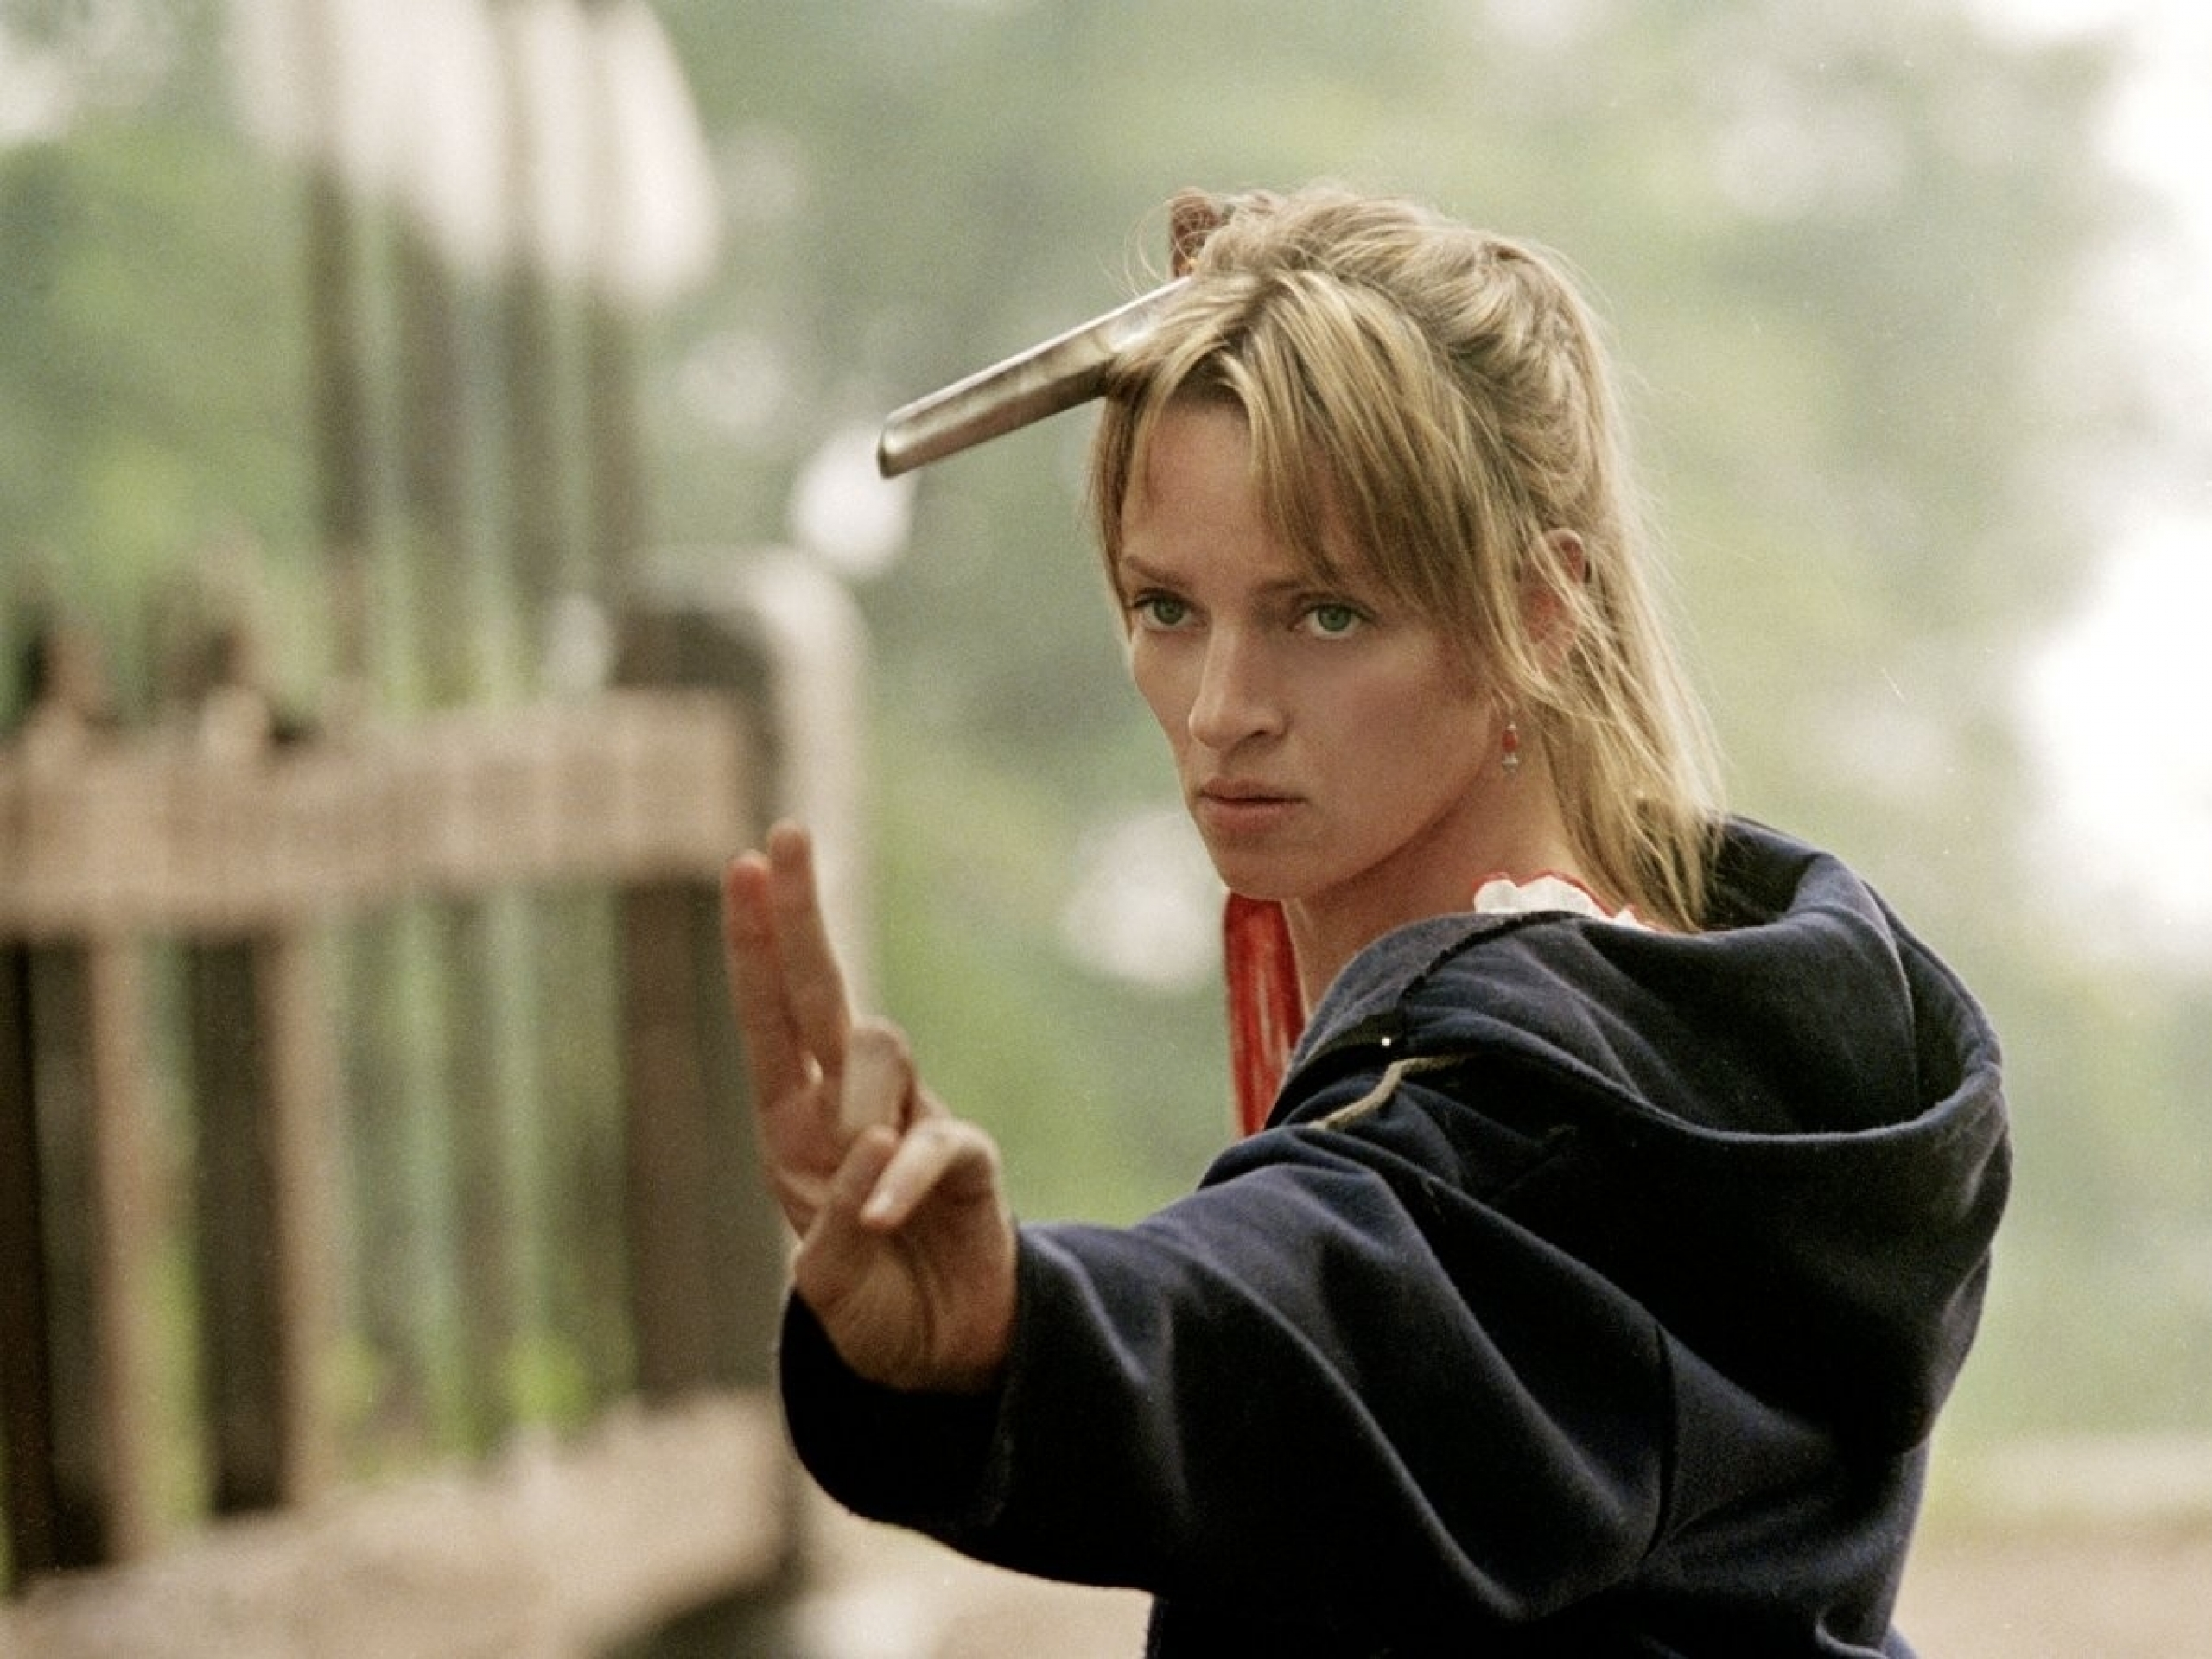 Uma Thurman as Beatrix Kiddo from Kill Bill 2